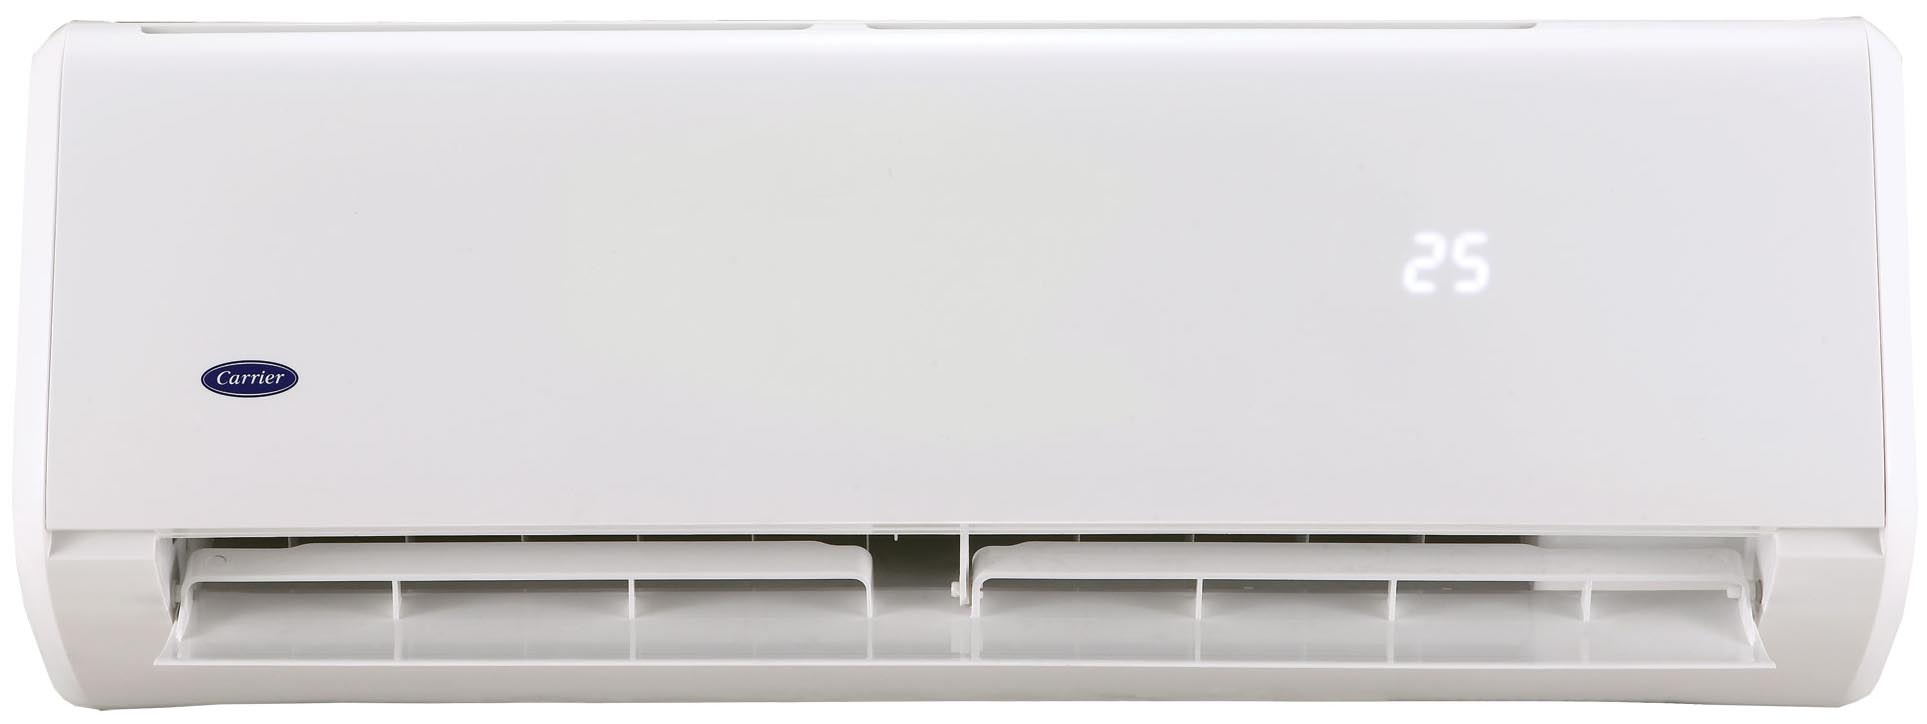 Carrier 42QHC009DS / 38QHC009DS серии Crystal Inverter